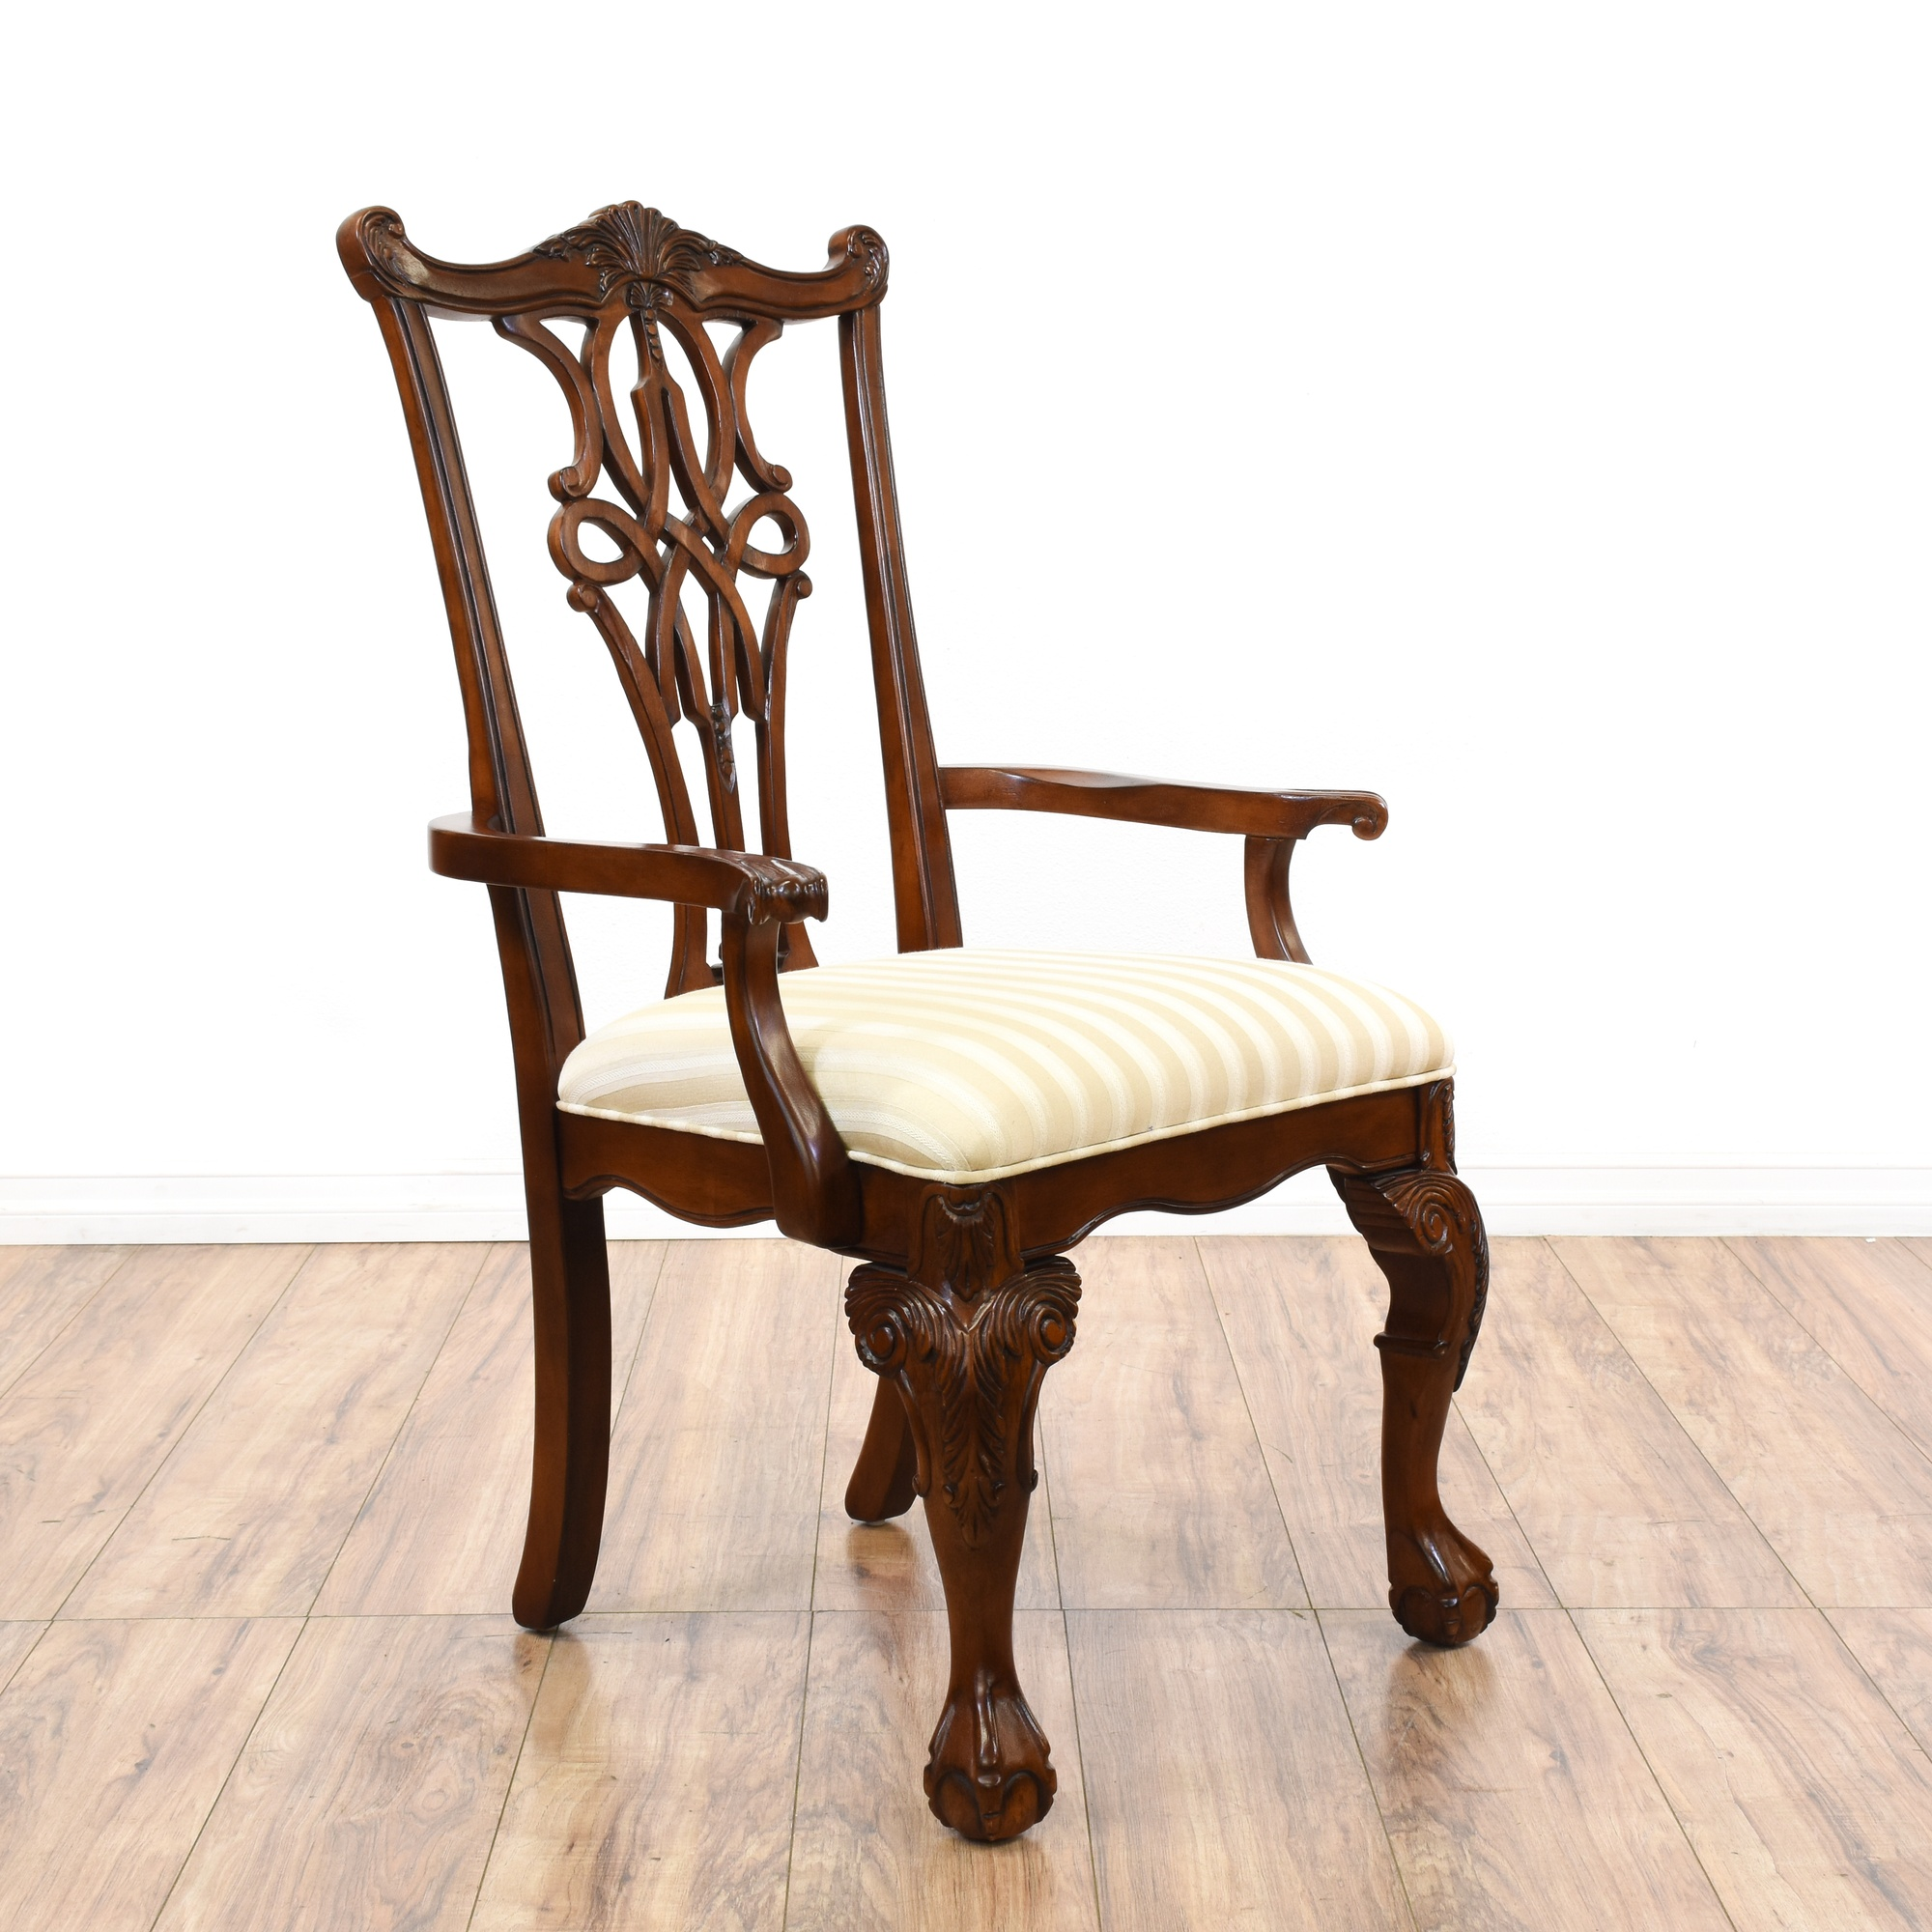 Dining Room Chairs San Diego: Set Of 6 Pierced Splat Chippendale Dining Chairs